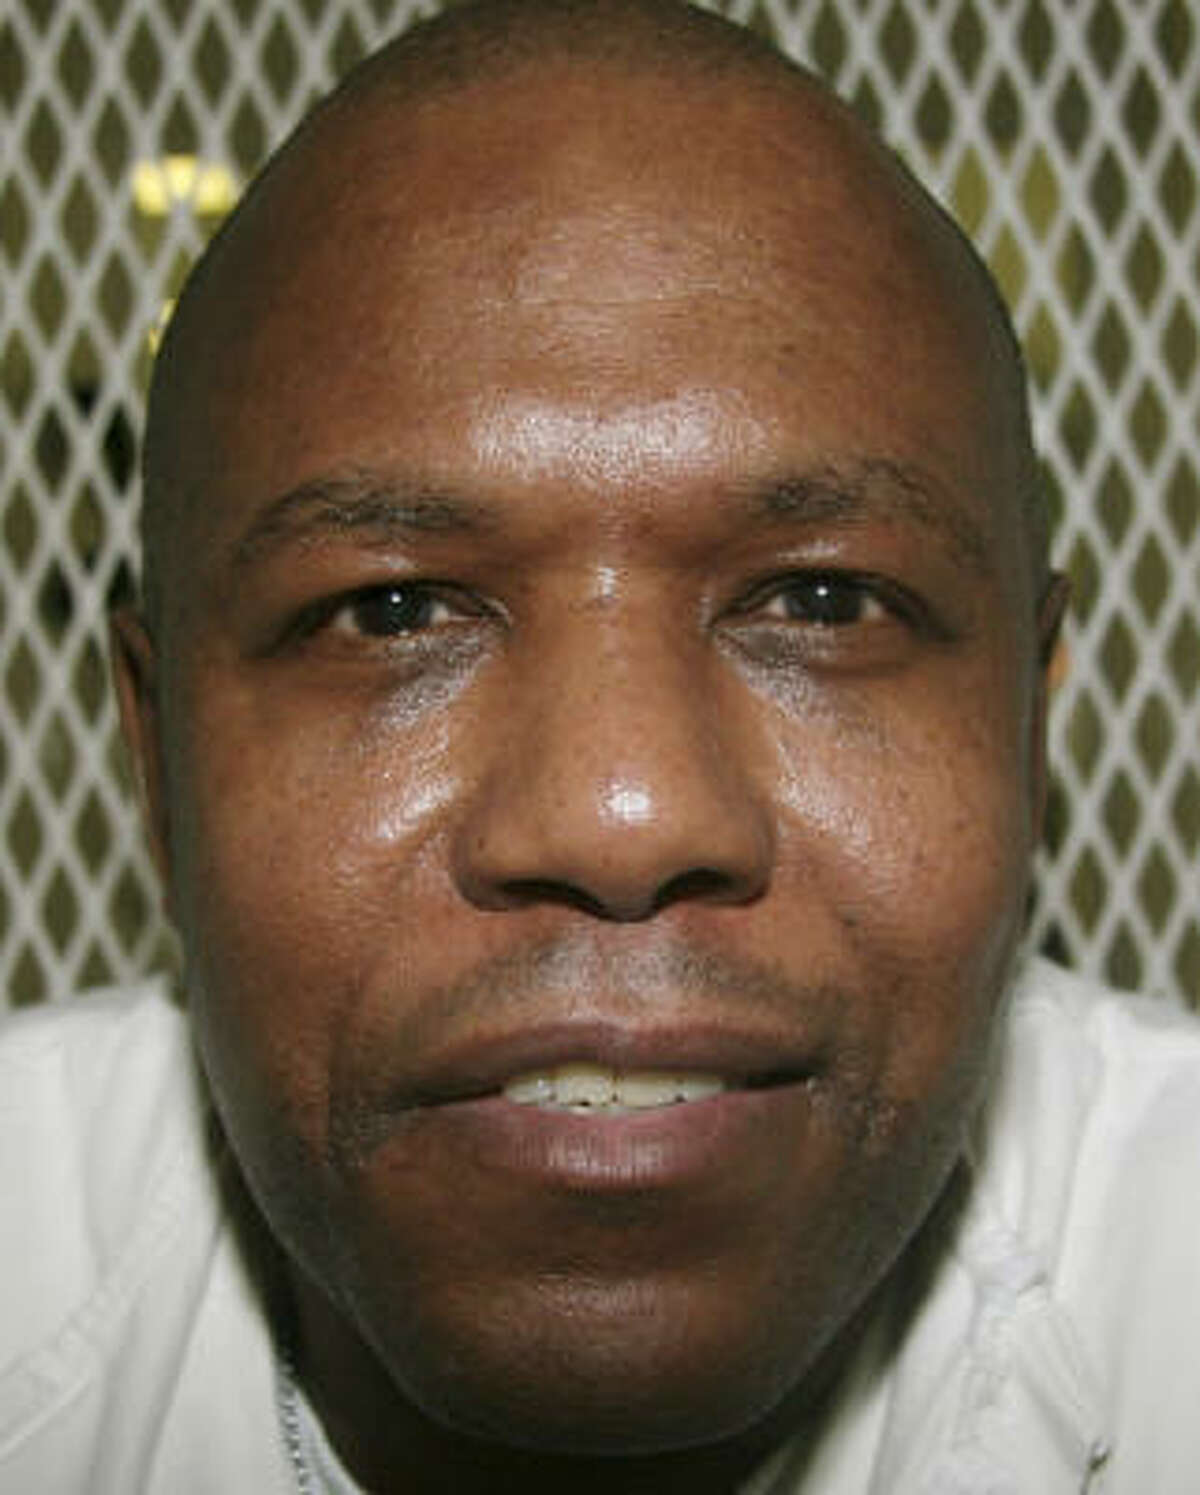 Larry Wooten stole $500 from the victims so he could buy cocaine.